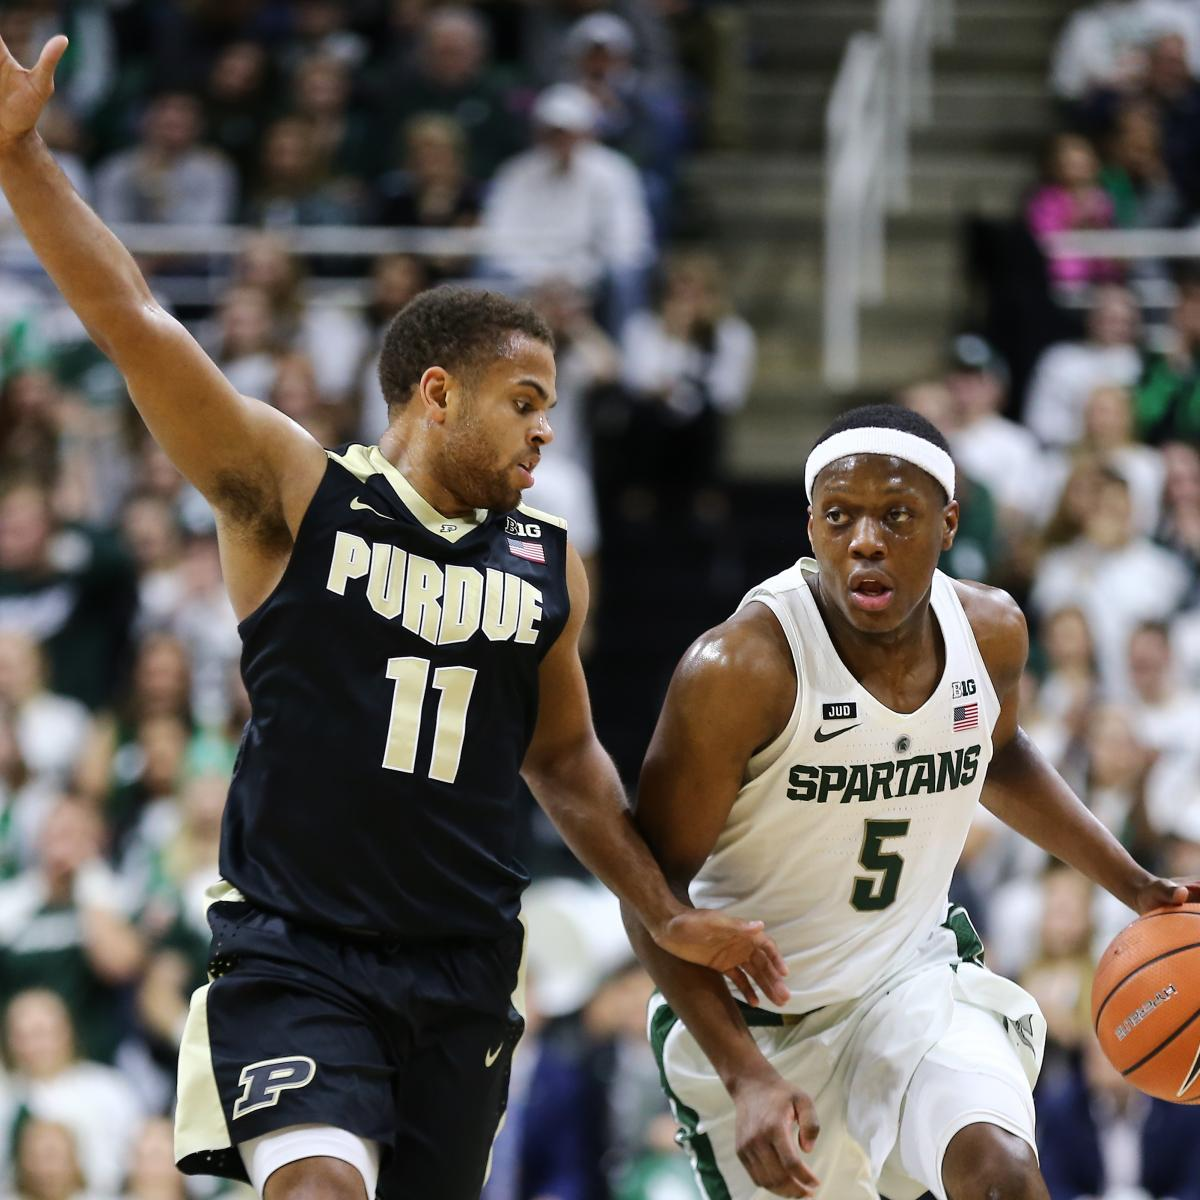 Big 10 tournament 2018 schedule and bracket predictions for big 10 tournament 2018 schedule and bracket predictions for conference tourney bleacher report latest news videos and highlights publicscrutiny Gallery